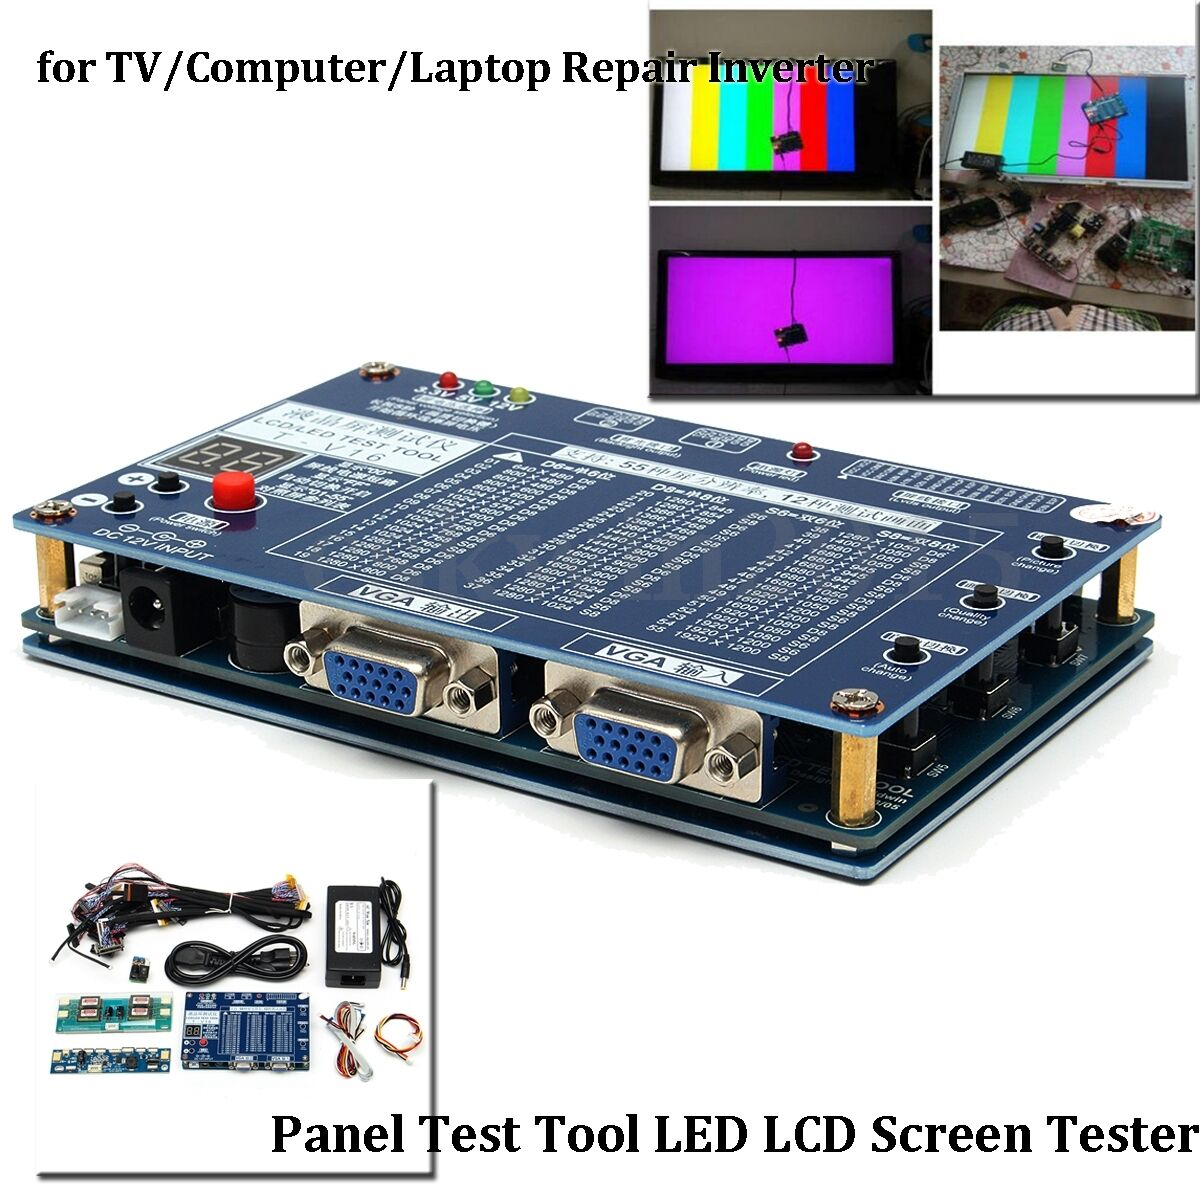 19pcs panel test tool led lcd screen tester inverter lvds cables for tv laptop cad. Black Bedroom Furniture Sets. Home Design Ideas